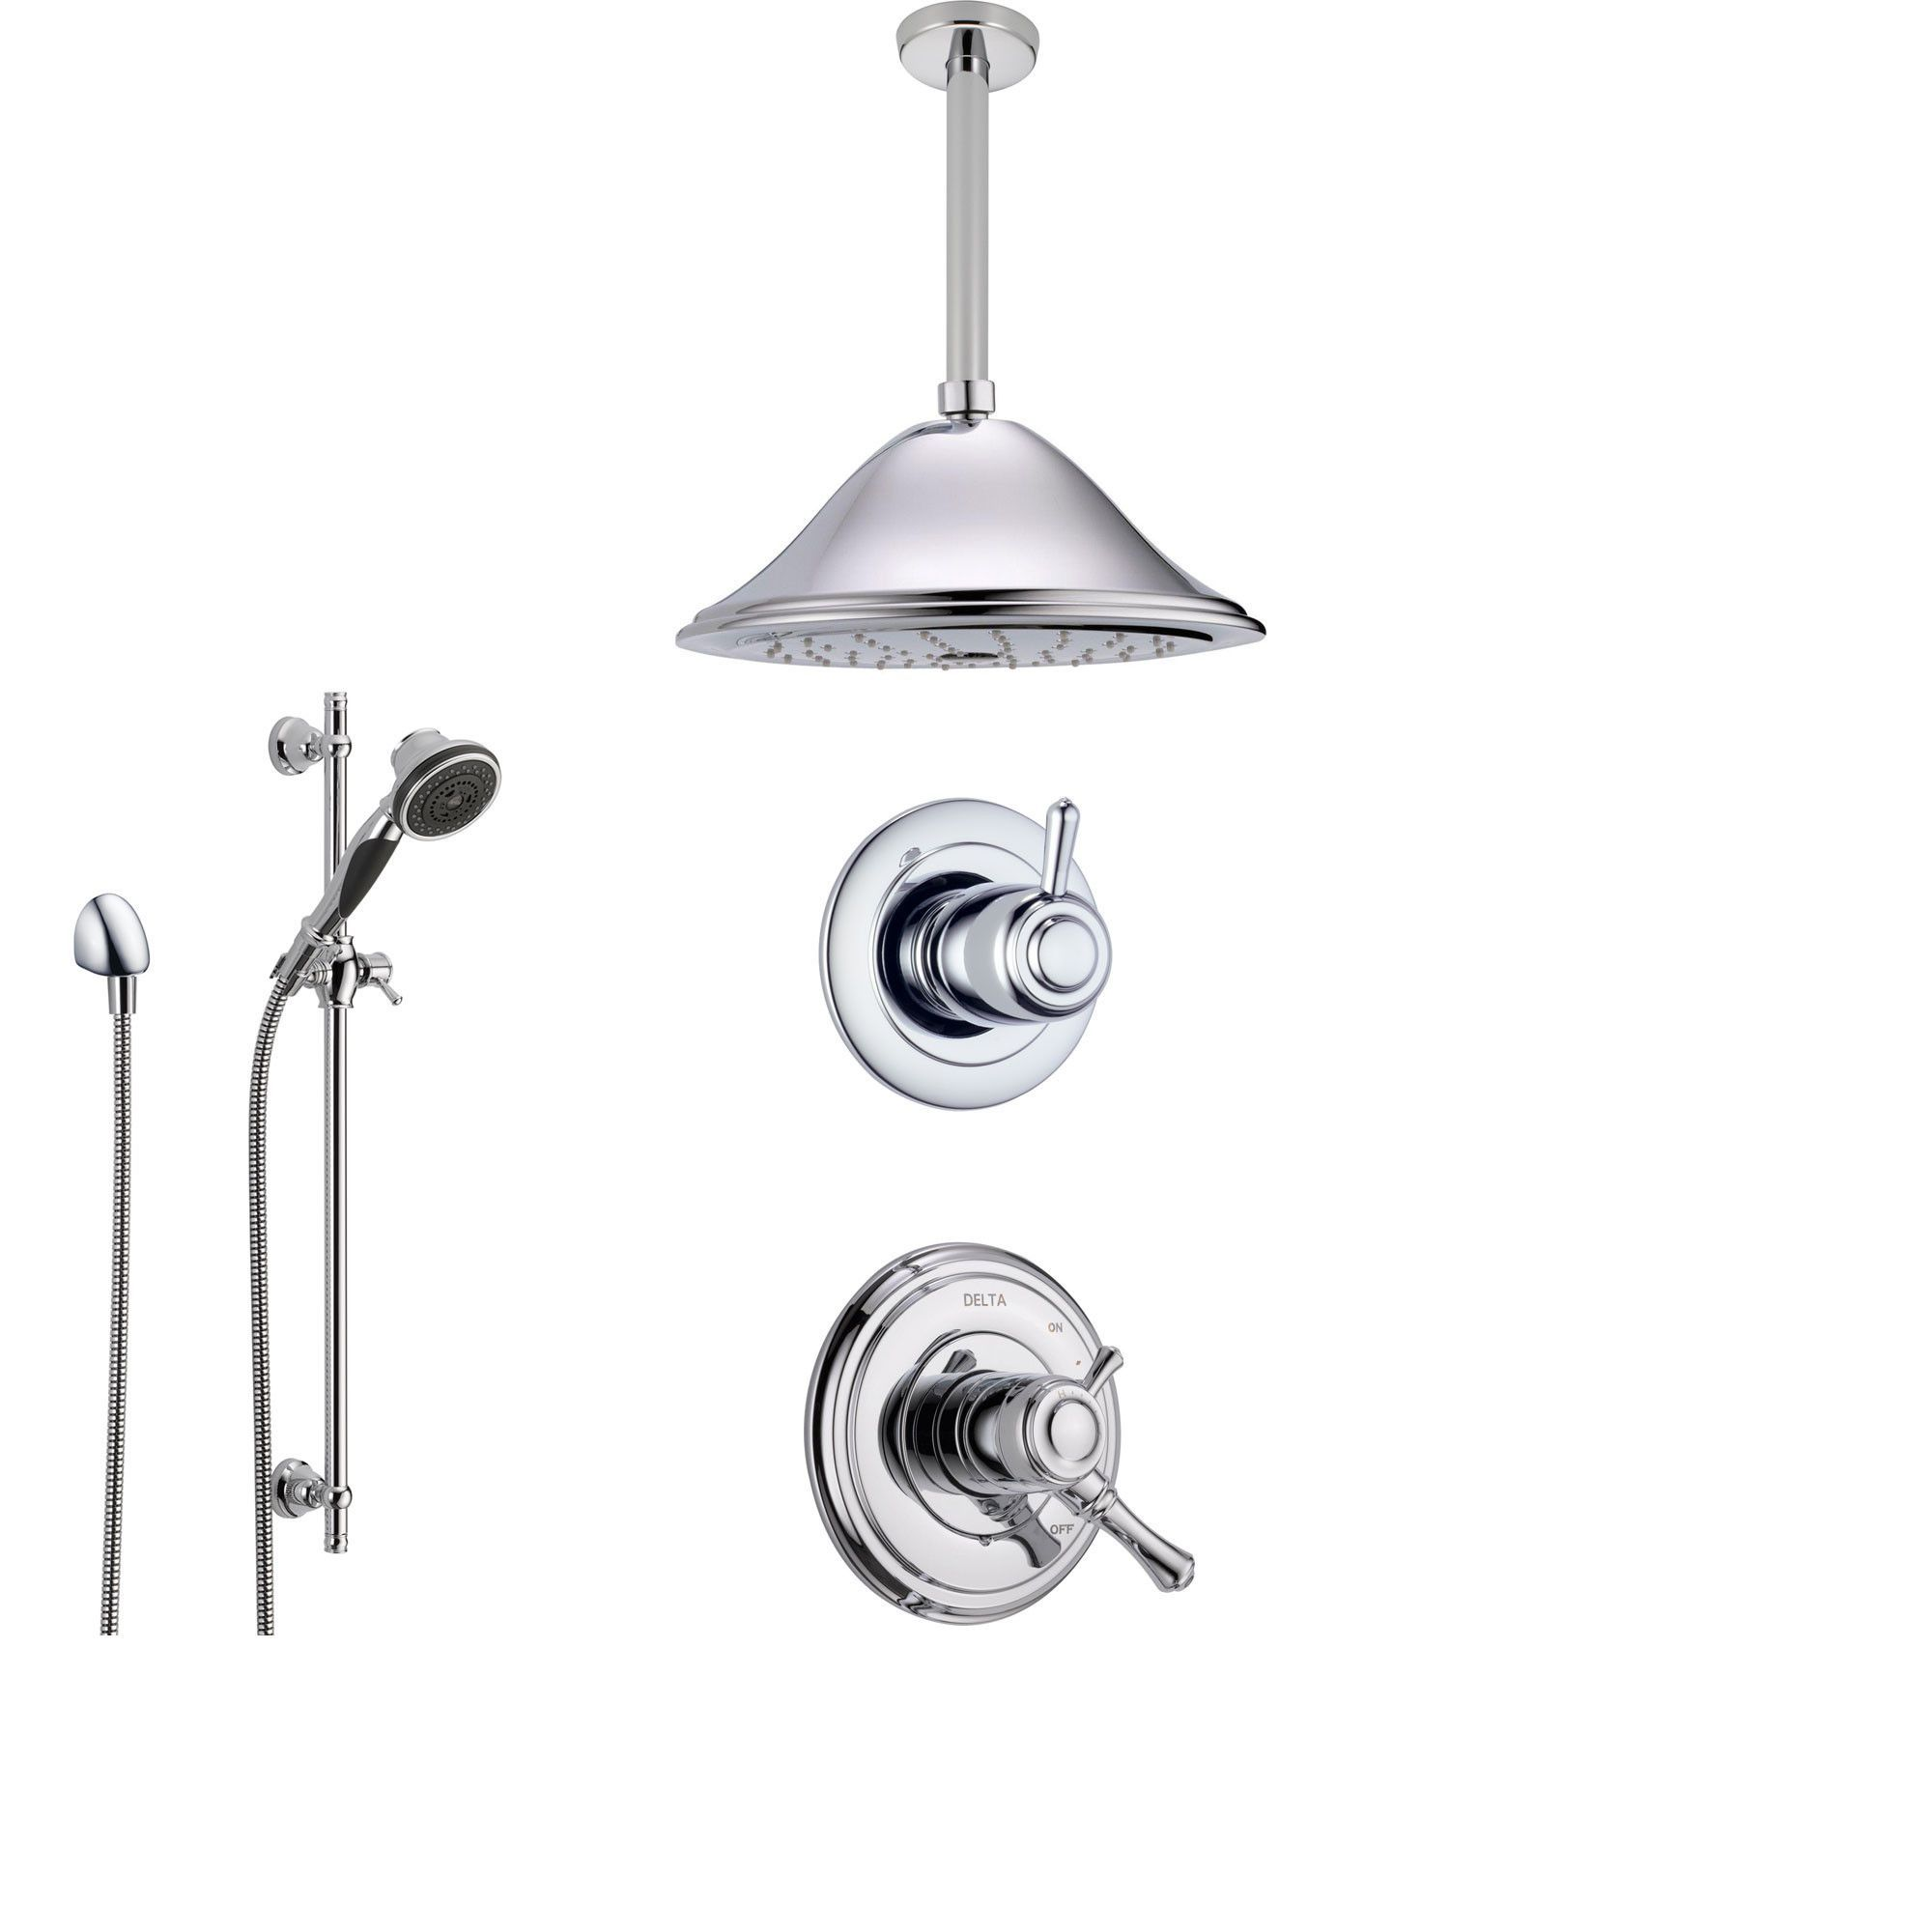 Delta Cassidy Chrome Shower System With Dual Control Shower Handle